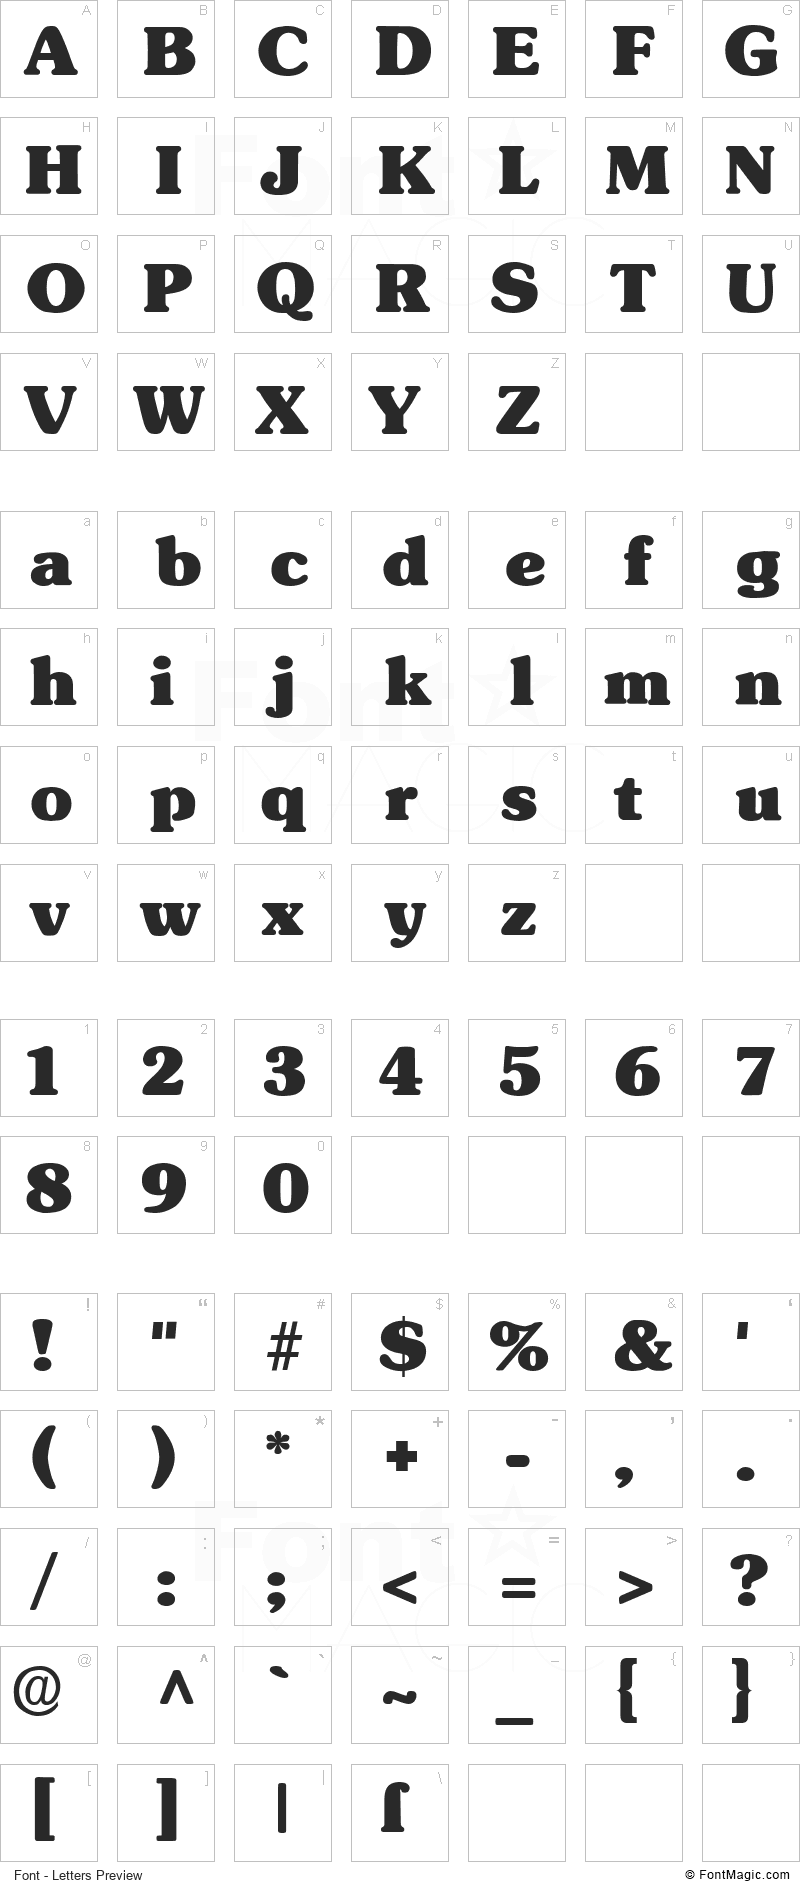 Subway Font - All Latters Preview Chart